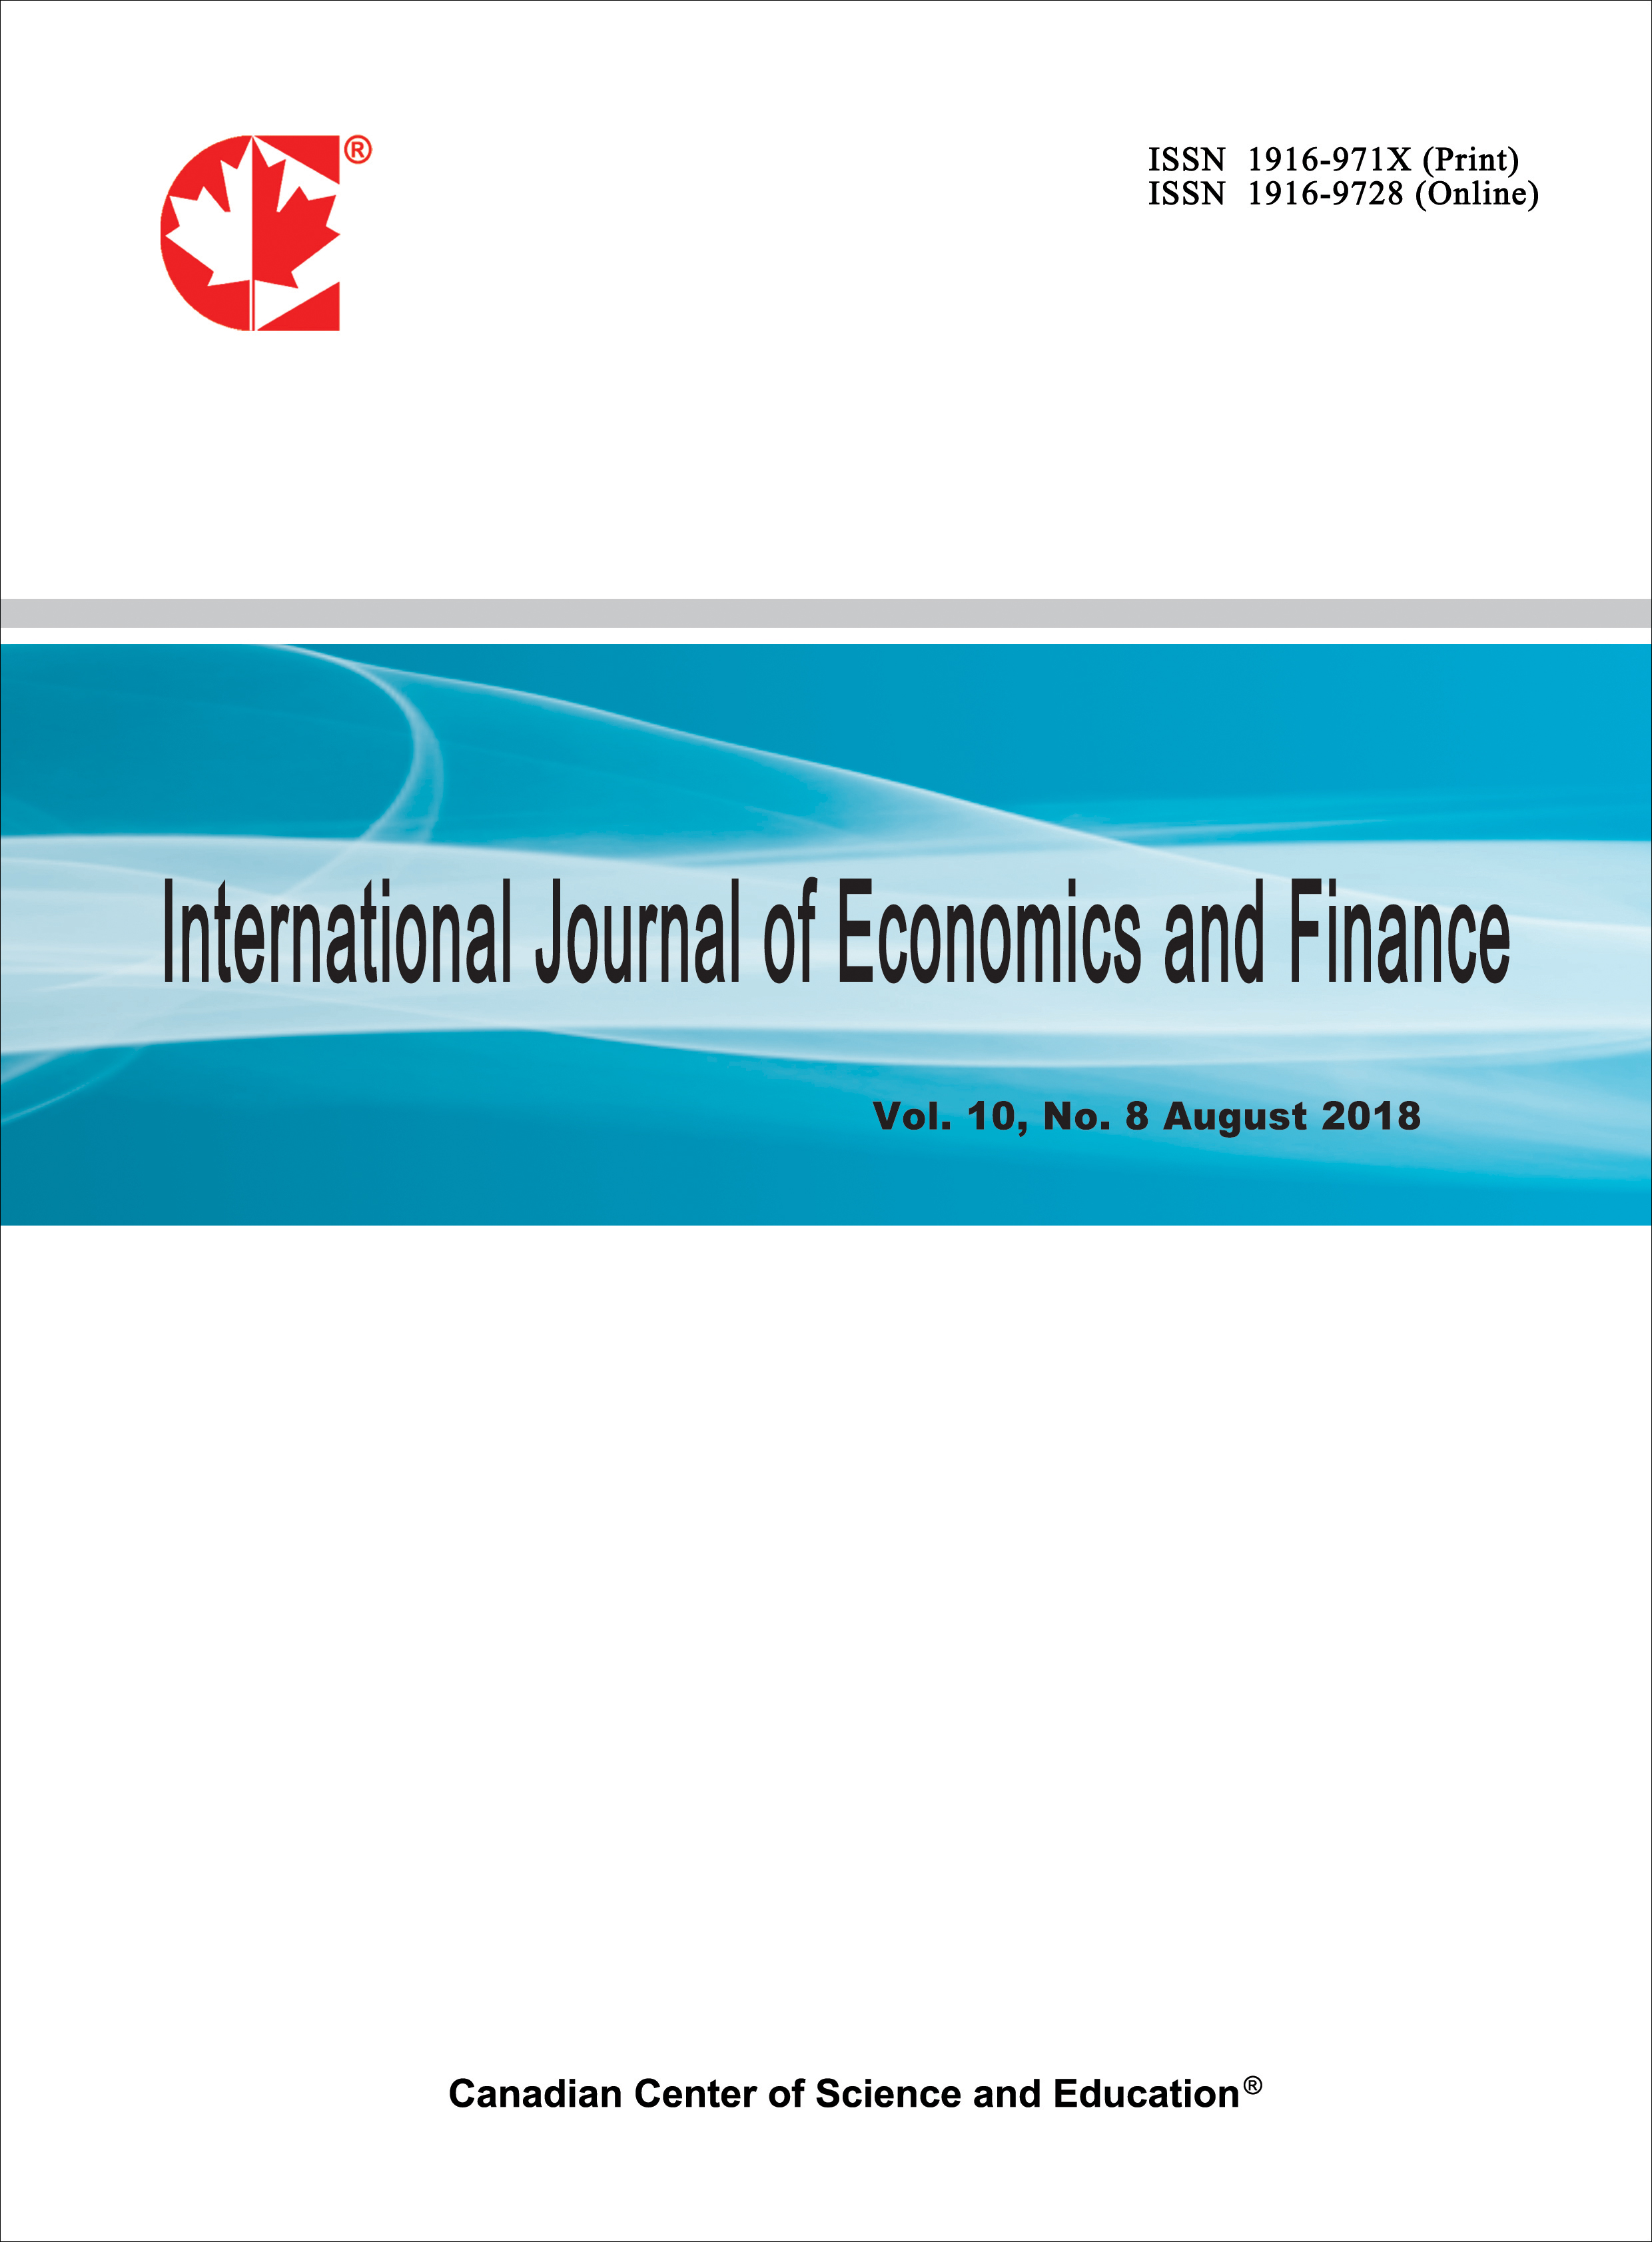 Effect of Dividend on Stock Price in Emerging Stock Market: A Study ...